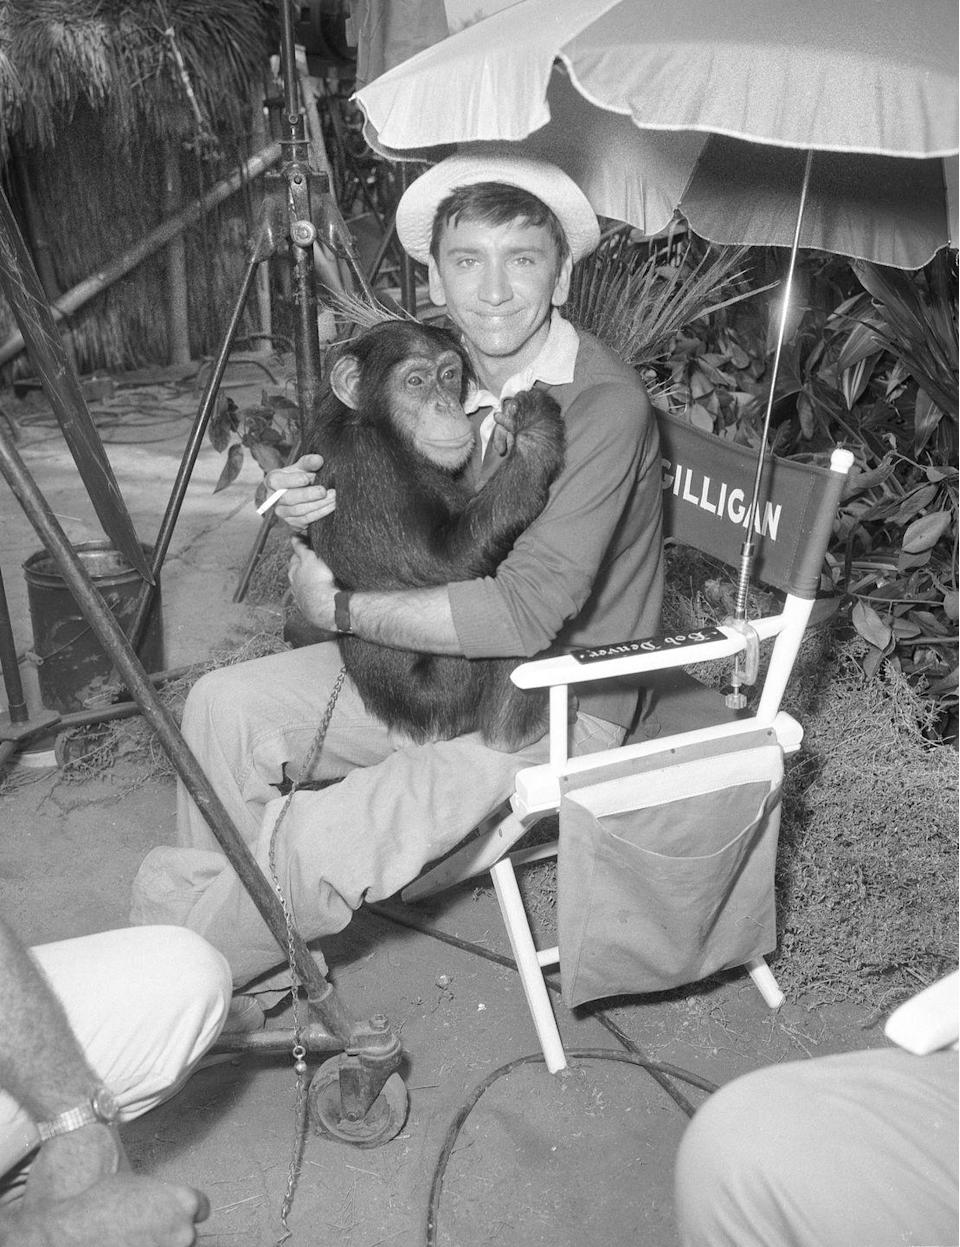 "<p>The star of <em>Gilligan's Island</em> <a href=""https://www.schultzmyers.com/injury-and-film-5-actors-who-were-nearly-killed-while-filming/"" rel=""nofollow noopener"" target=""_blank"" data-ylk=""slk:almost got attacked by a lion"" class=""link rapid-noclick-resp"">almost got attacked by a lion</a> when filming a scene for the show. He was supposed to go into Mr. and Mrs. Howell's hut, unaware a lion was in there, but things went awry when the animal jumped towards Denver. Luckily, the trainer stepped in just in time.</p>"